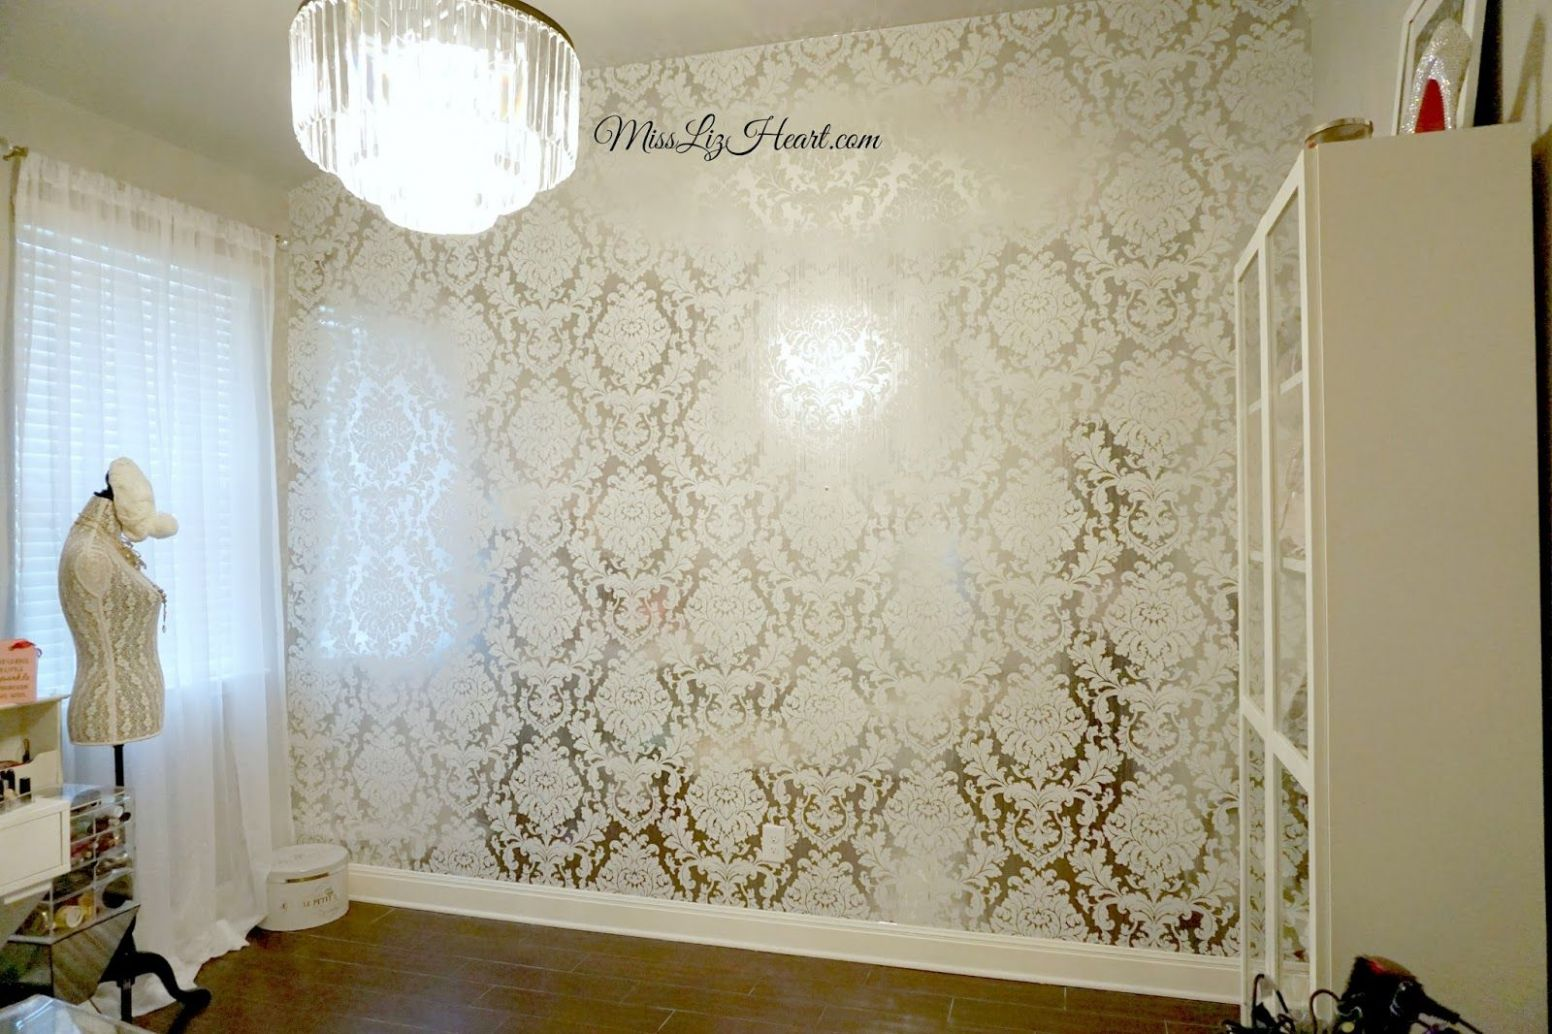 New Wallpaper! Makeup Room Update | White and silver wallpaper ..